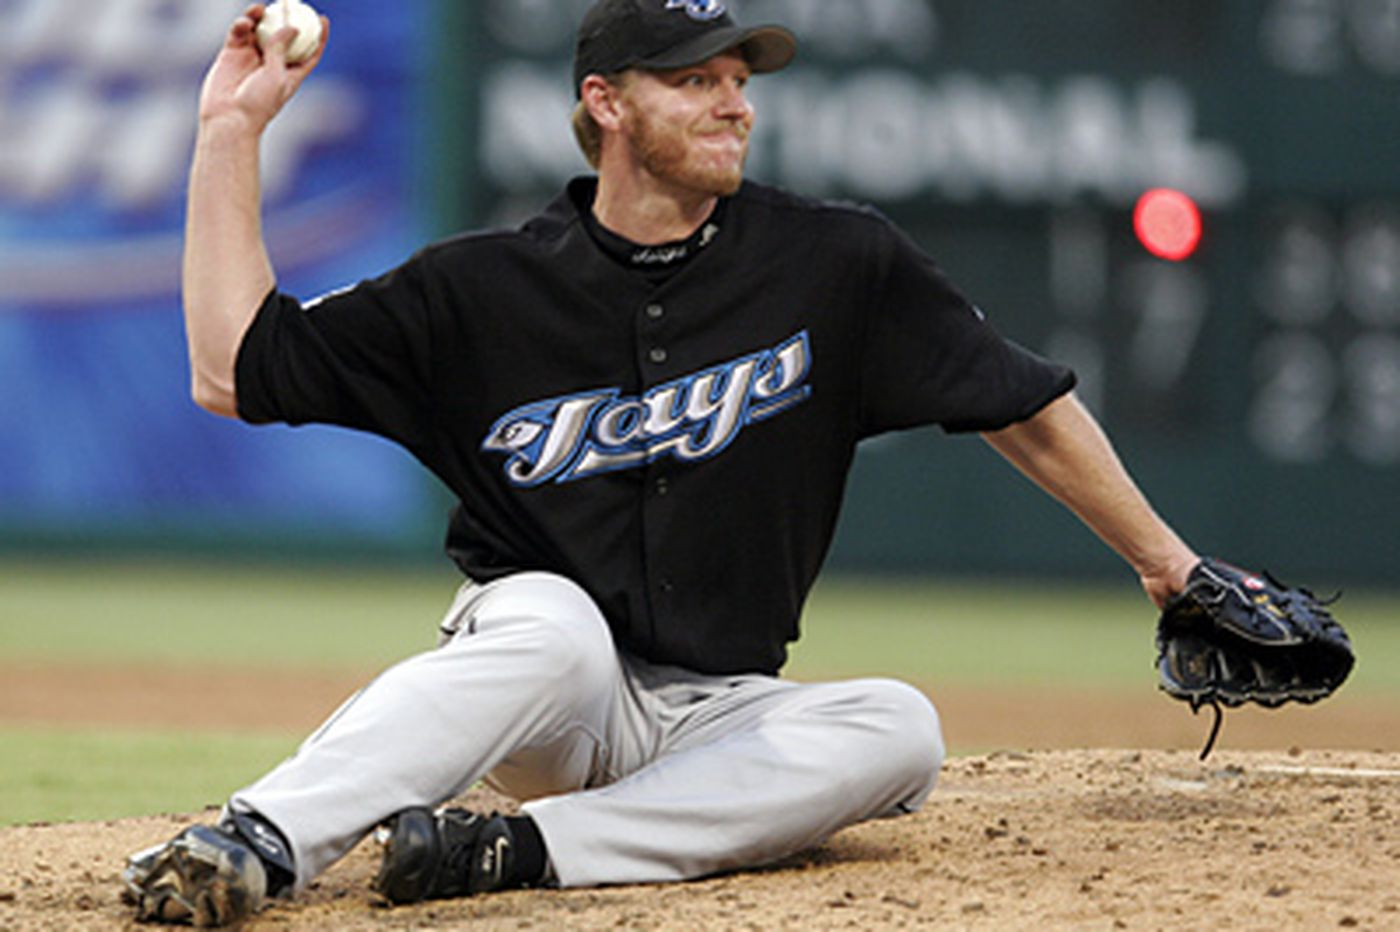 Phillies well-positioned to add Halladay